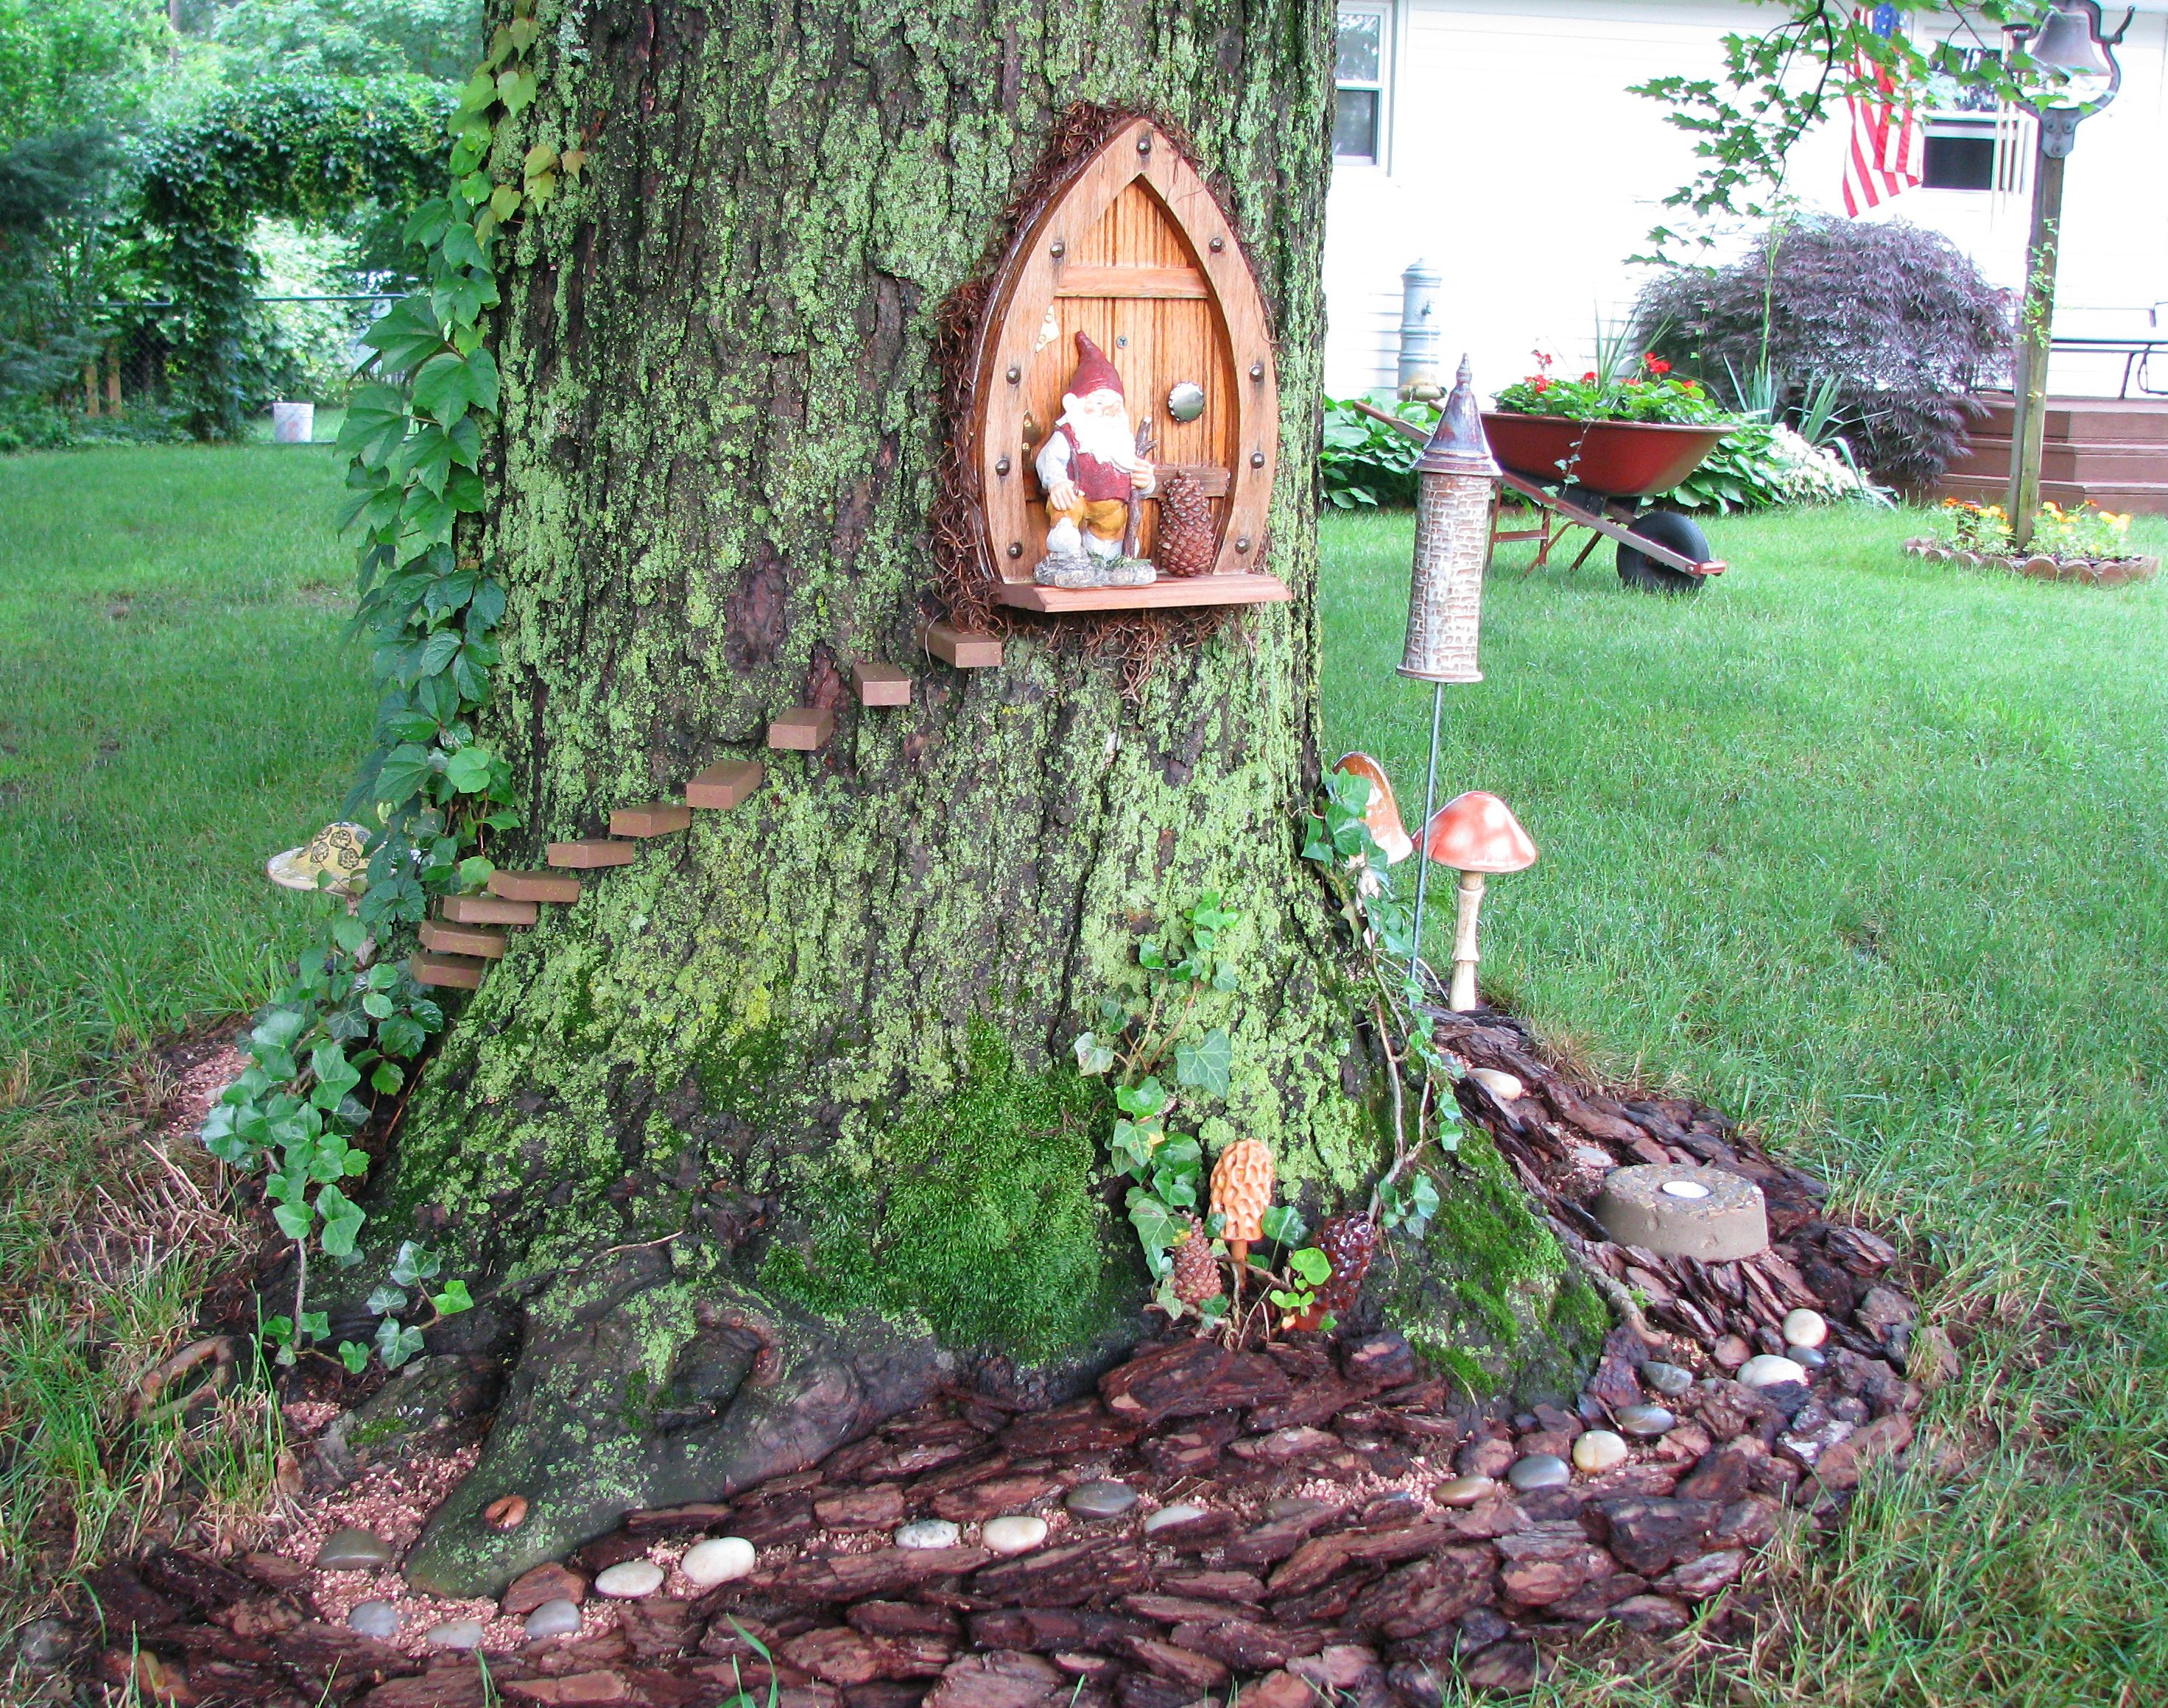 Gnome In Garden: Same Tree As Gnome Home Back Door